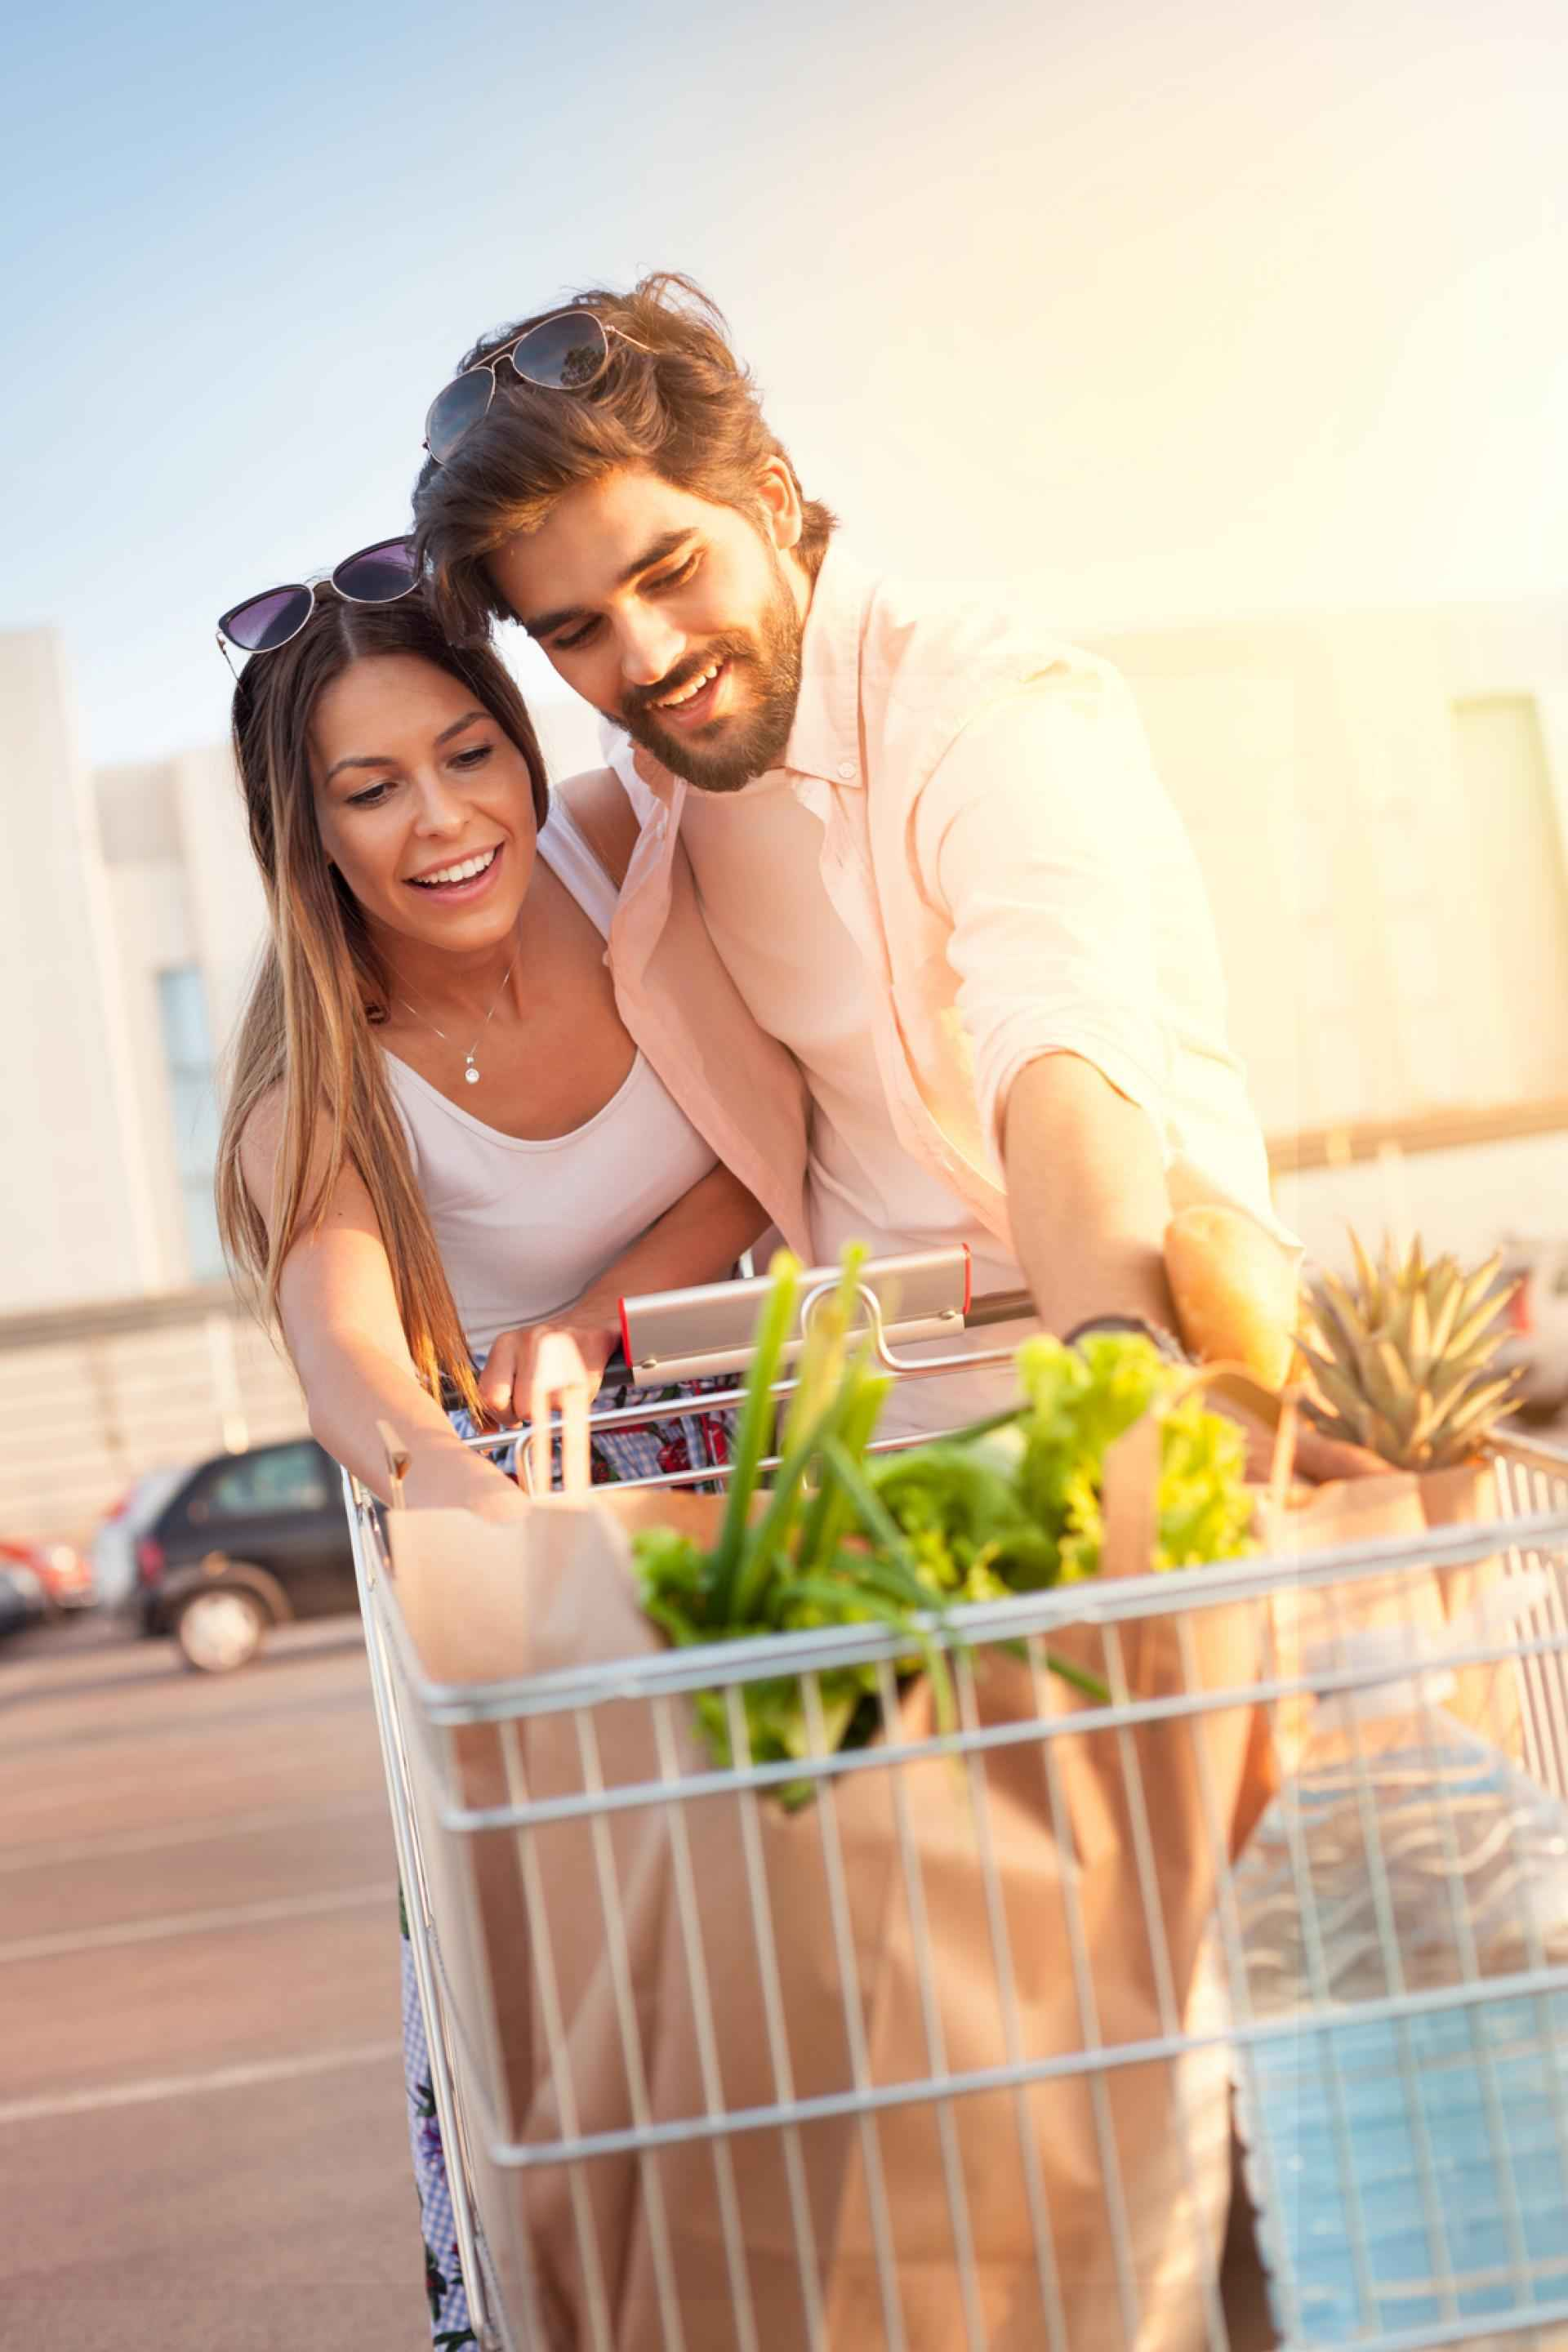 12 Libido-Boosting Foods for a Healthy Sex Life